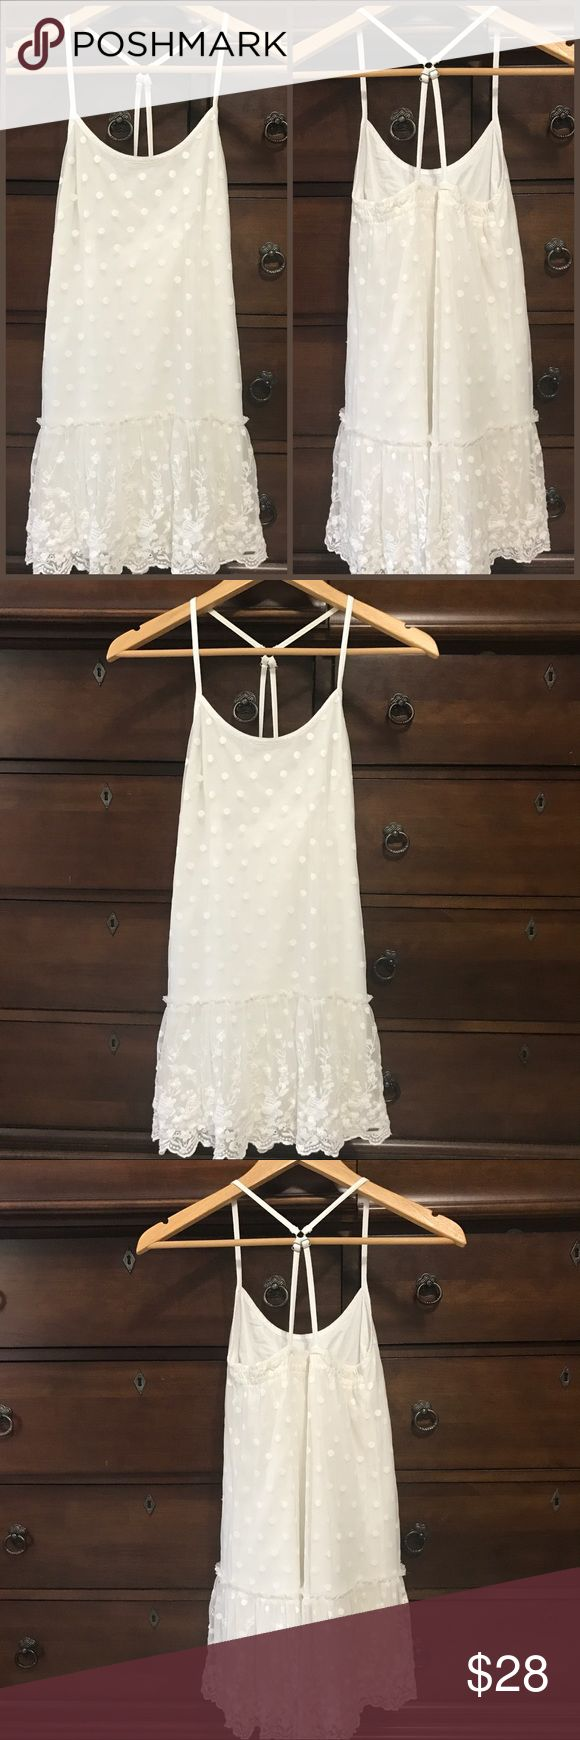 Girls Abercrombie Scalloped Lace Polka Dot Dress SO Pretty and in beautiful condition!! Two layers with a Sheer Polka dot Lace overlay with scalloped edging 💕 Would make a perfect child's summer wedding/showers dress or for church...Size Medium or 12 see pic 8 for Abercrombie's size chart...offers welcome, bundle to save more plus ⚡️📦📫😃💕 Abercombie Kids Dresses